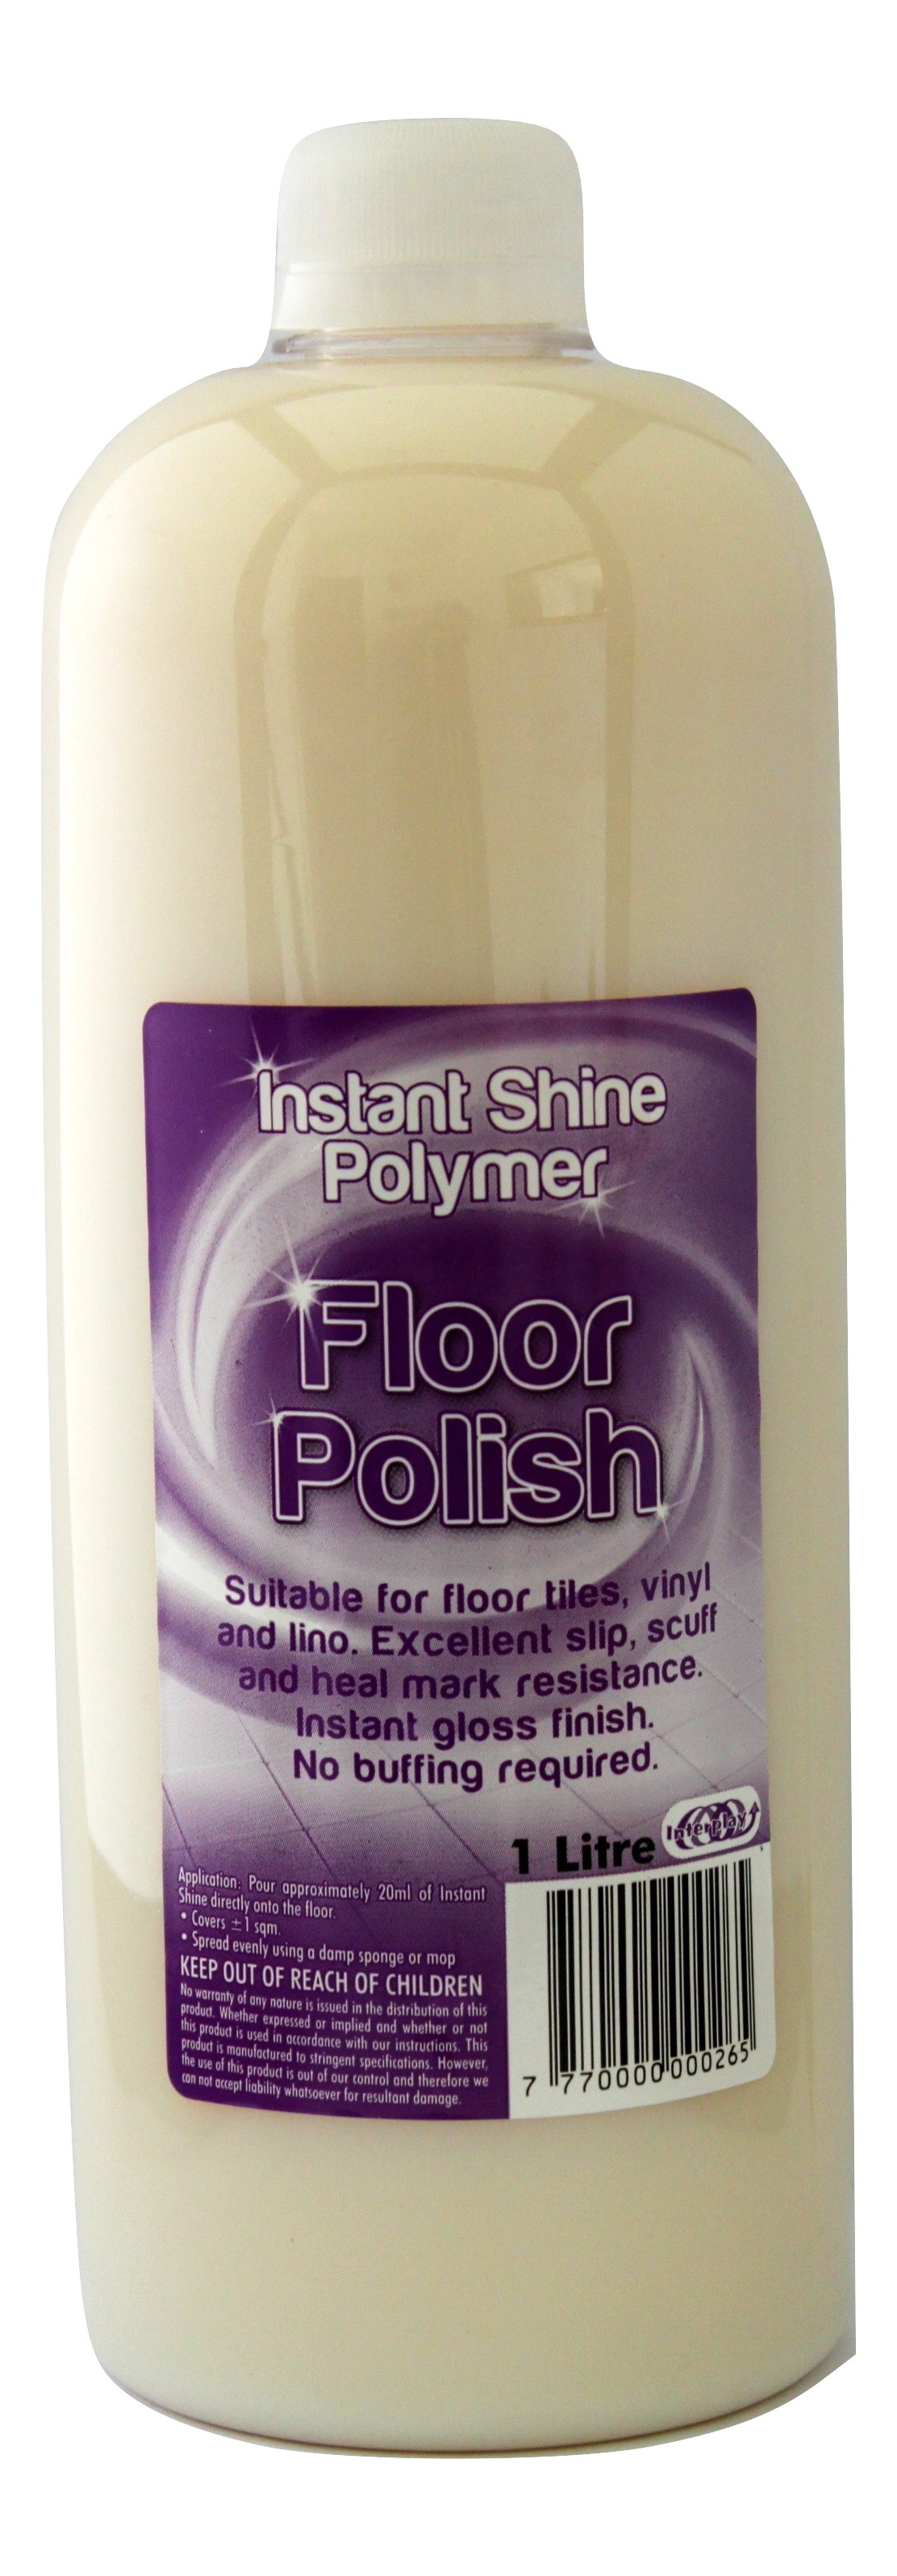 instant-shine-floor-polish--mop-and-shine